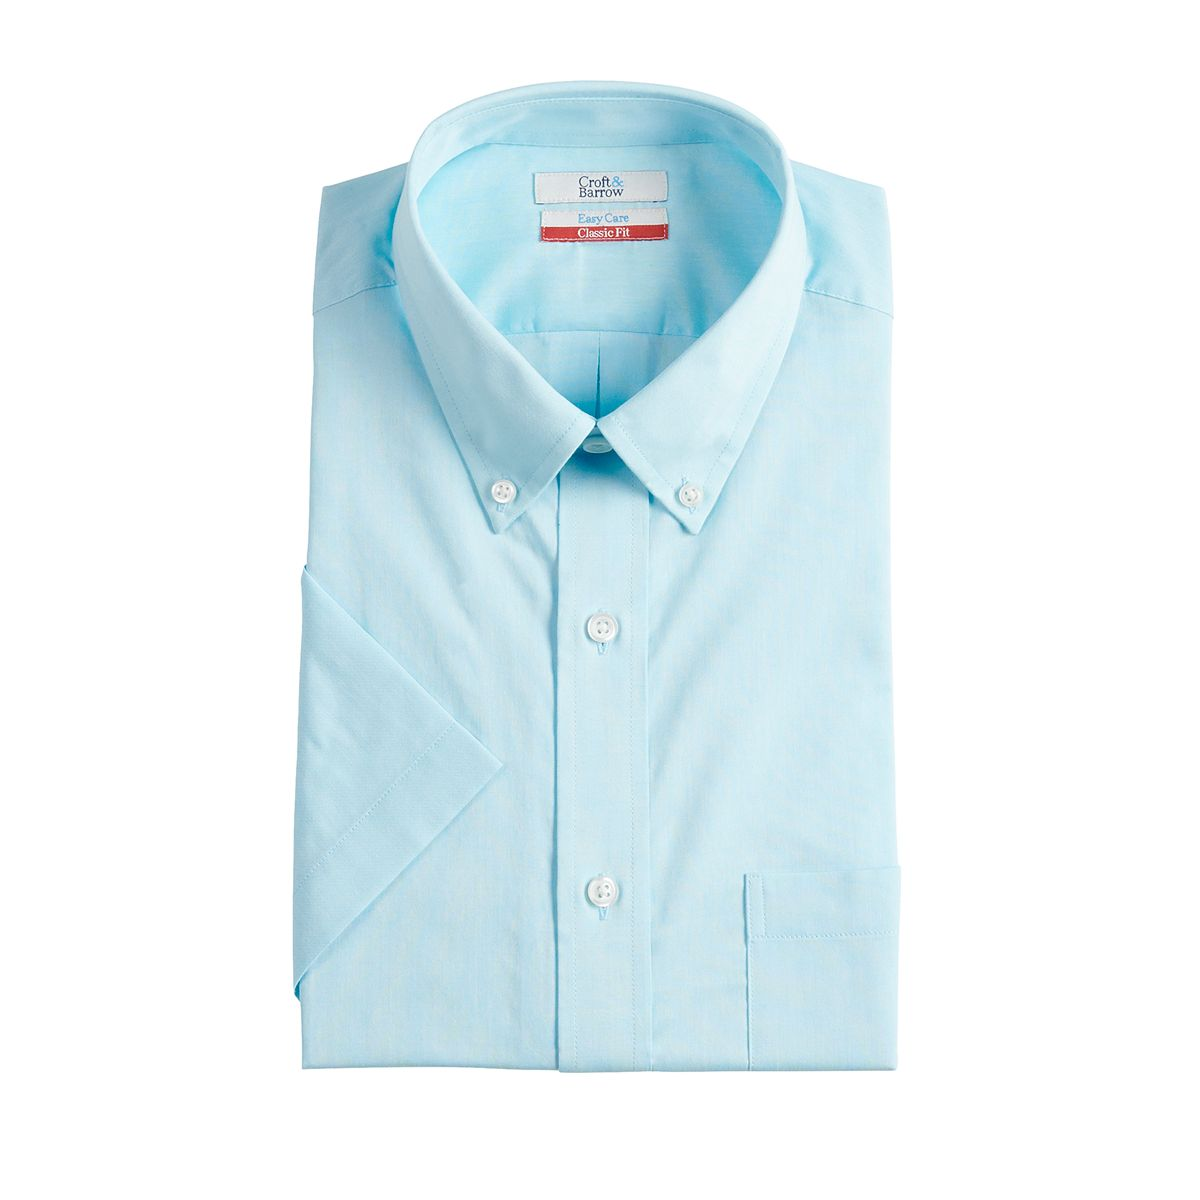 Men's Croft & Barrow Classic-Fit Easy-Care Short-Sleeved Dress Shirt